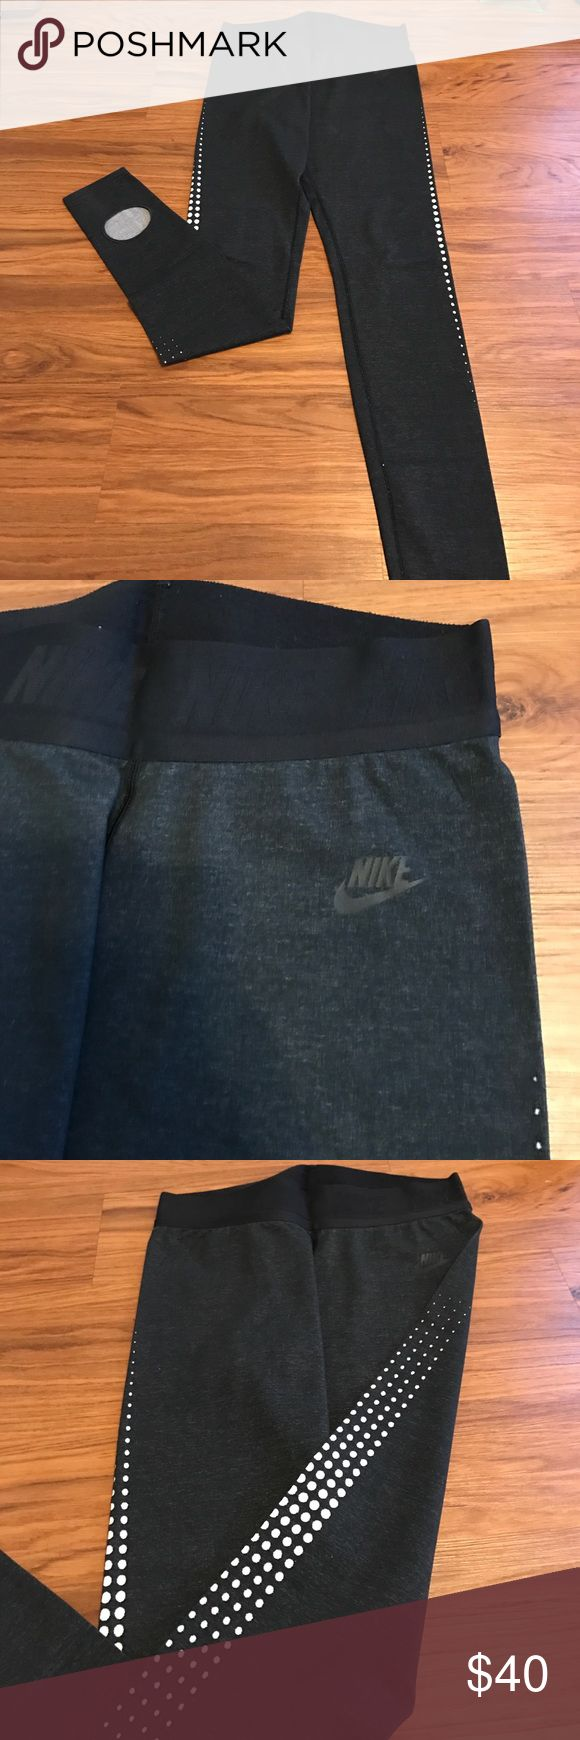 Nike Running Tights with holes for heels Hardly worn Marled black color wig white dot side design Nike Pants Leggings